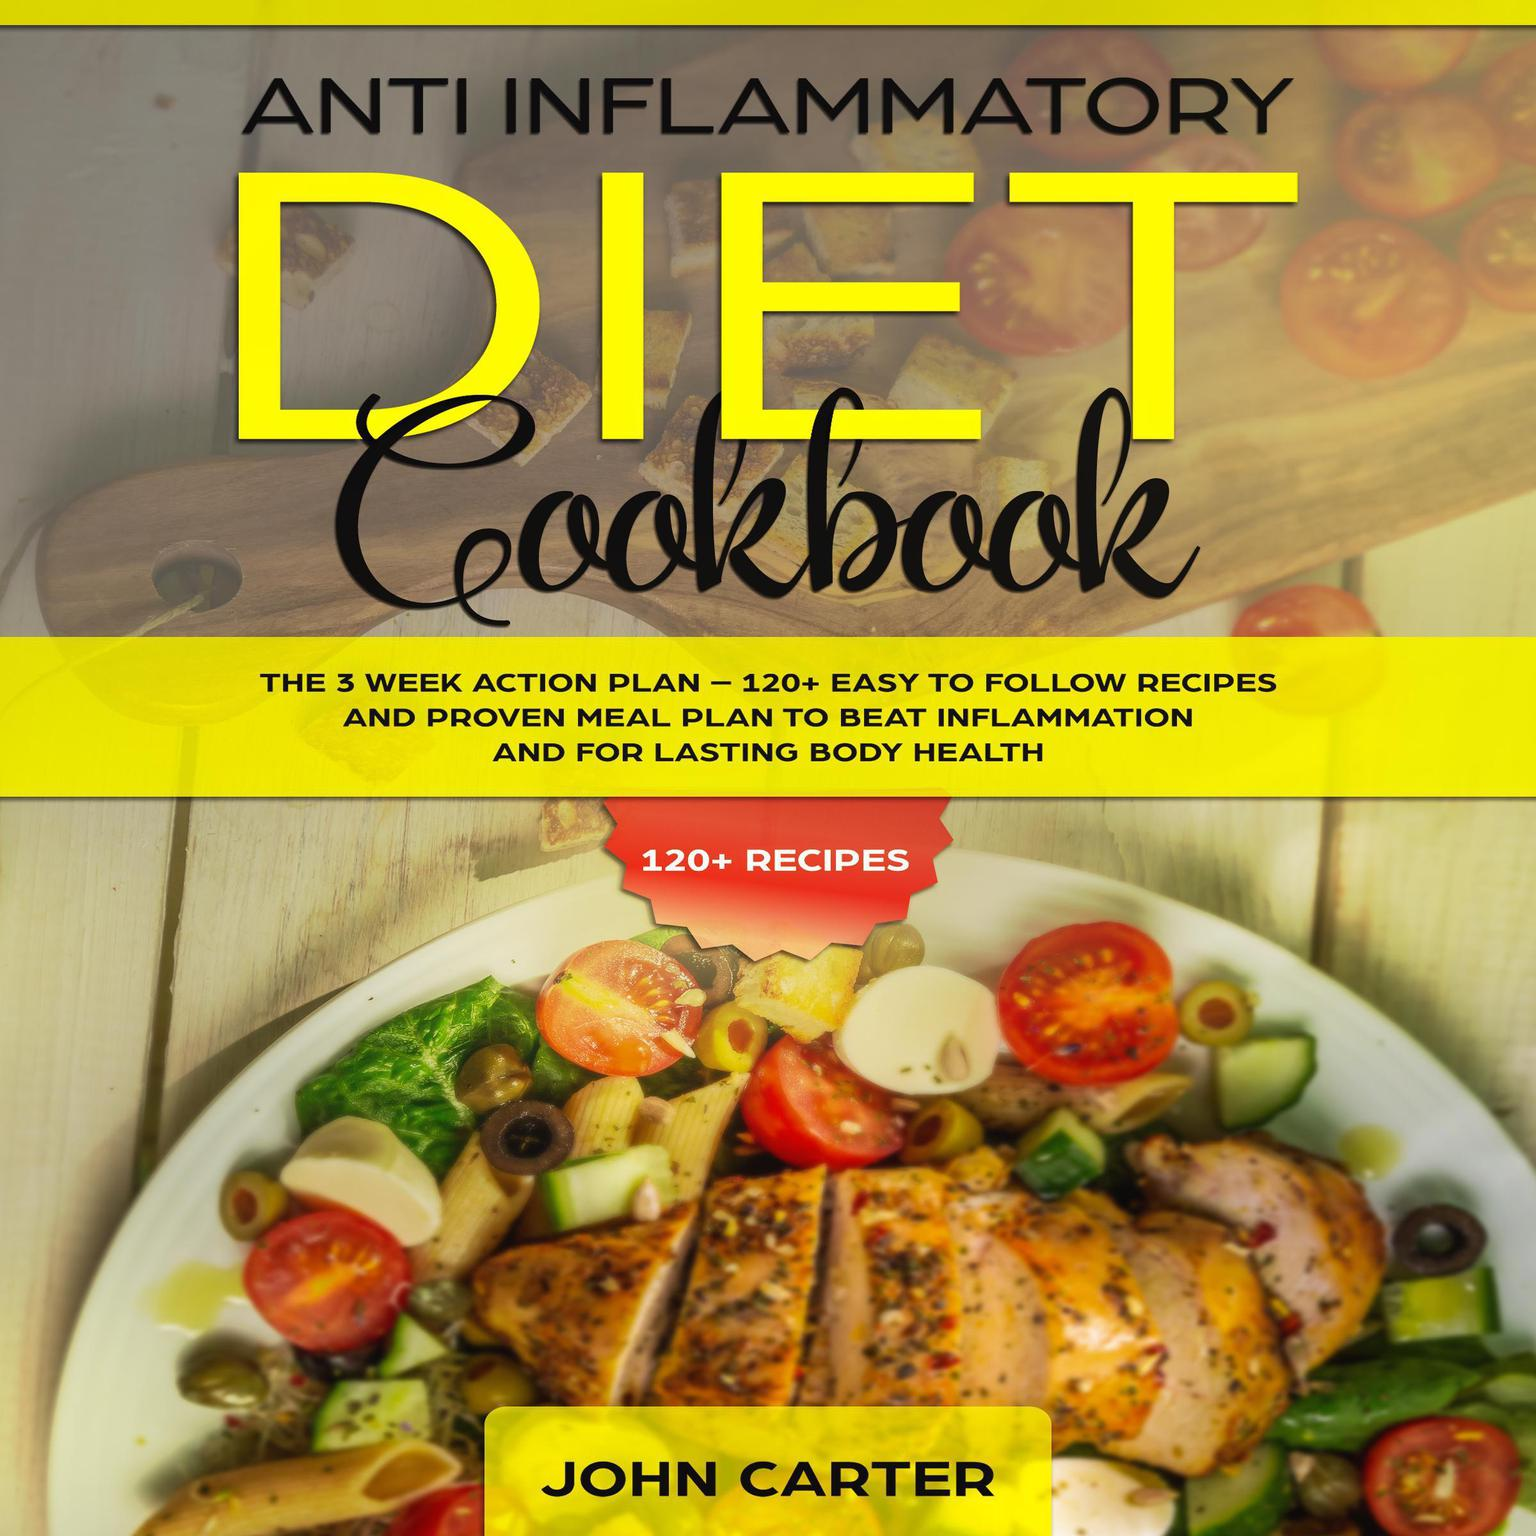 Anti Inflammatory Diet Cookbook: The 3 Week Action Plan—120+ Easy to Follow Recipes and Proven Meal Plan to Beat Inflammation and for Lasting Body Health Audiobook, by John Carter